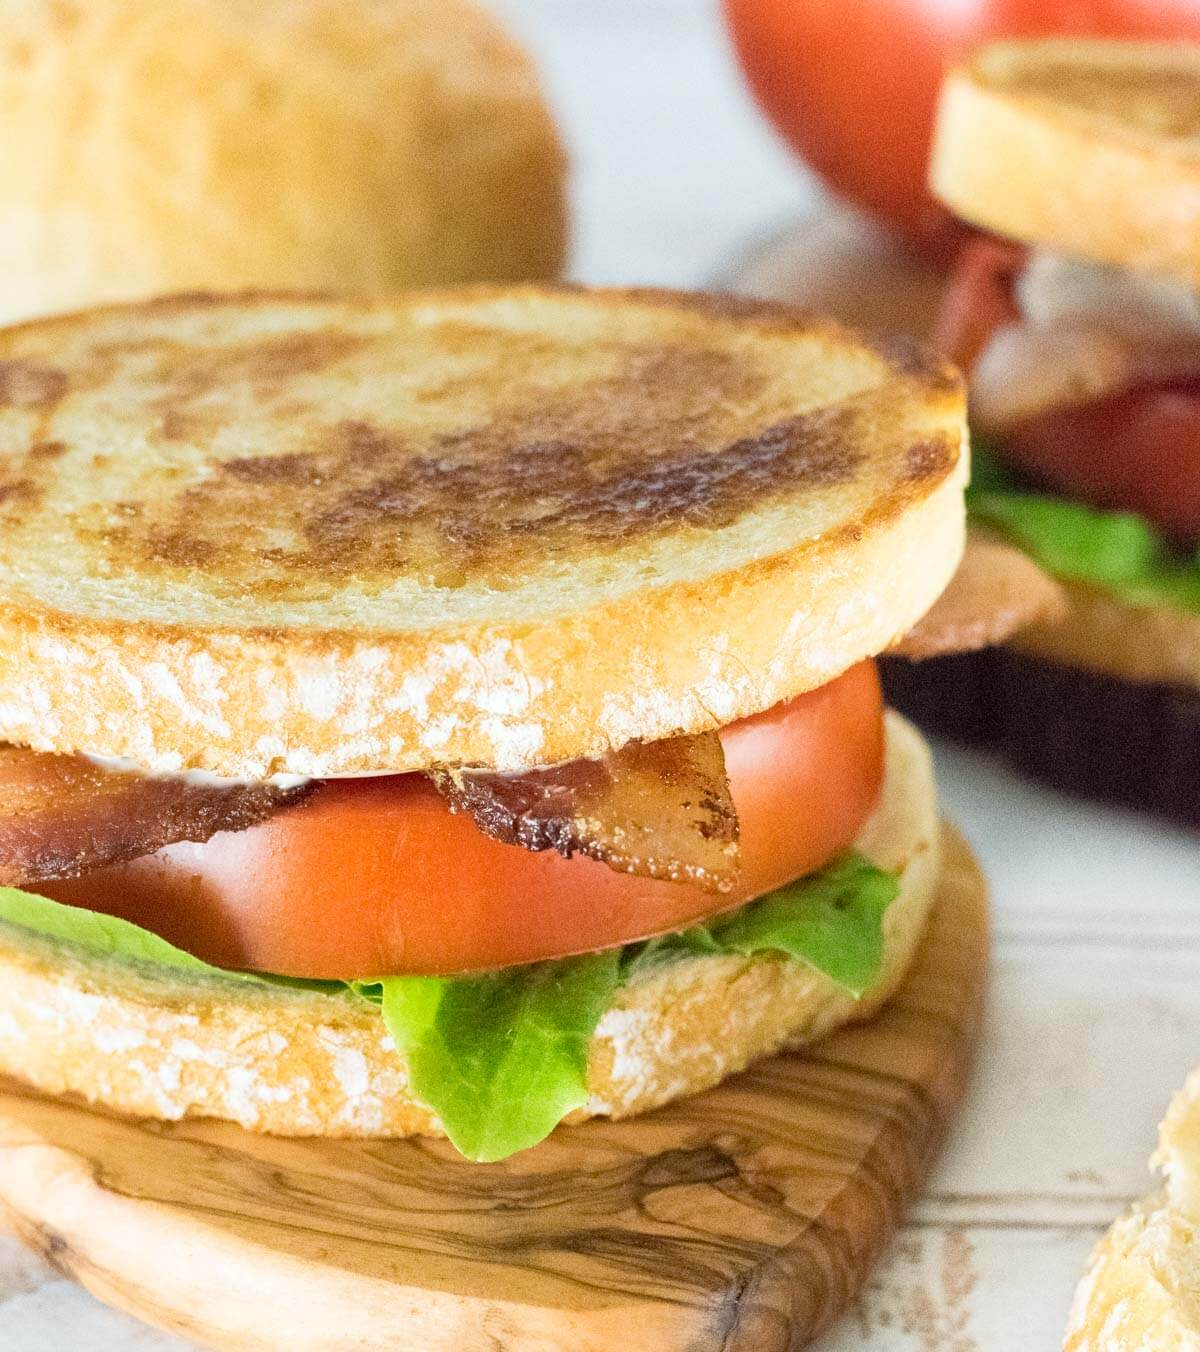 Ultimate BLT close up with thick cut bacon and ripe tomato